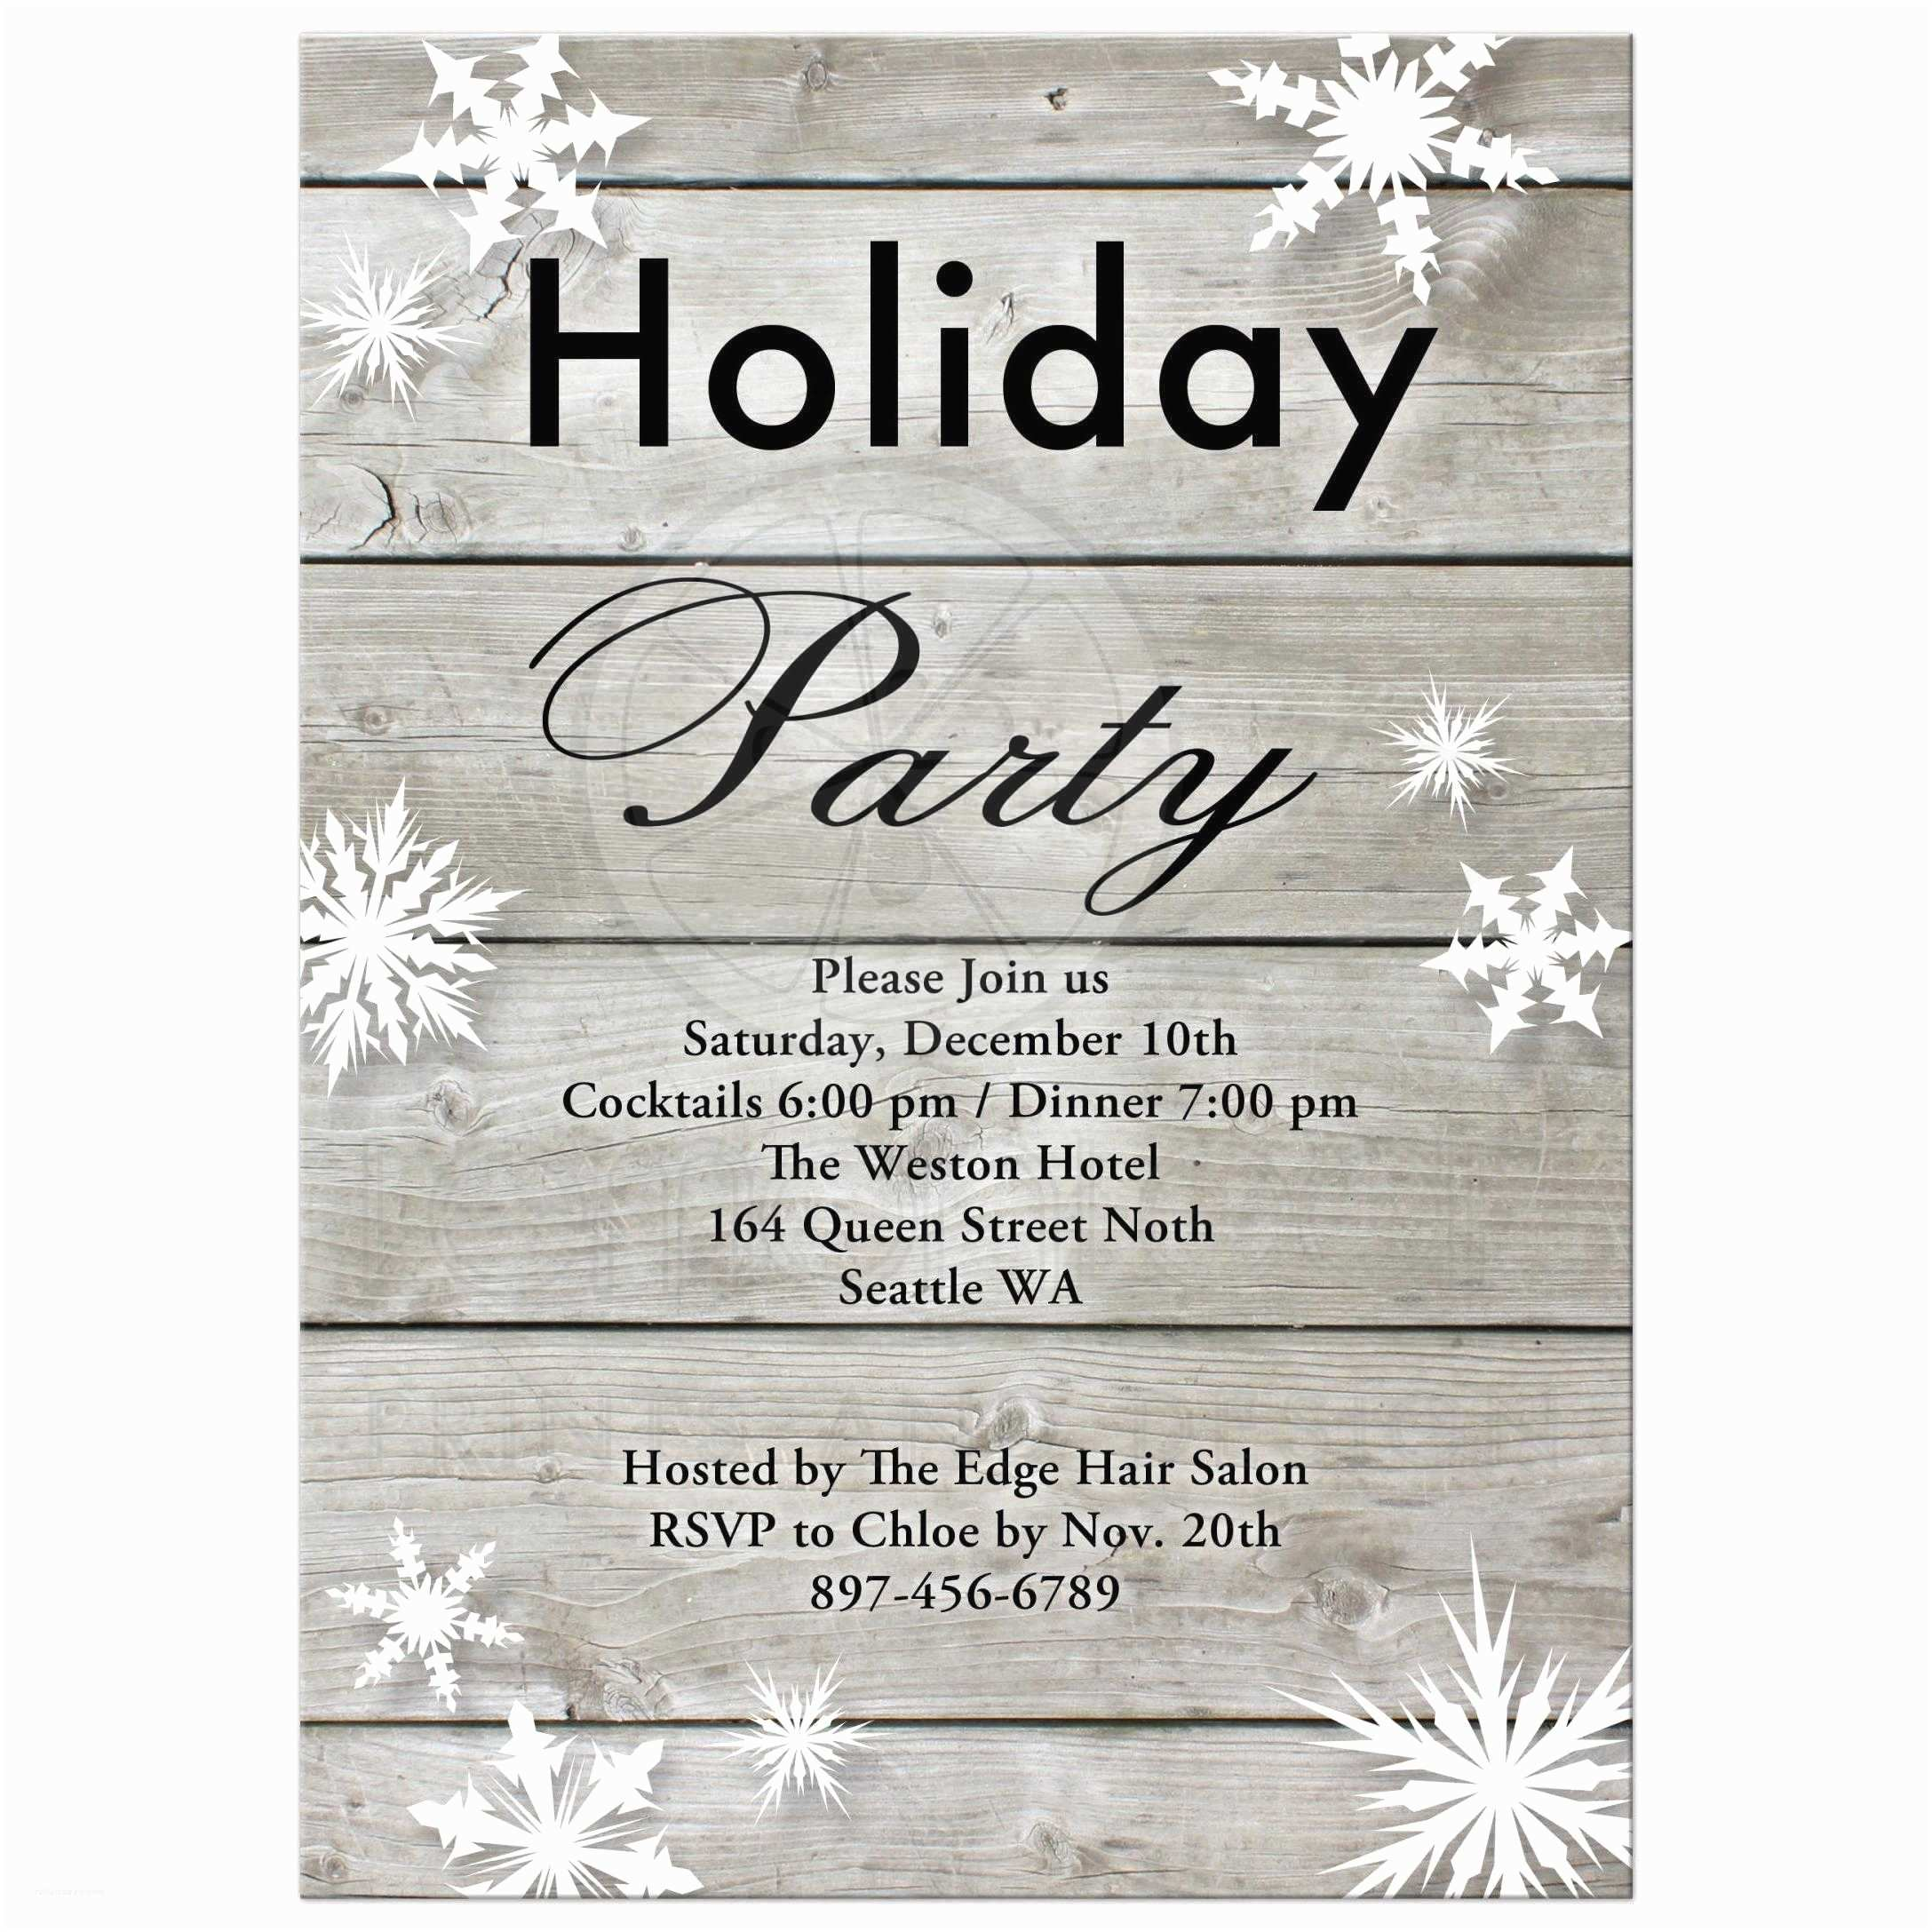 Corporate Holiday Party Invitations Corporate Holiday Party Invitation On Barn